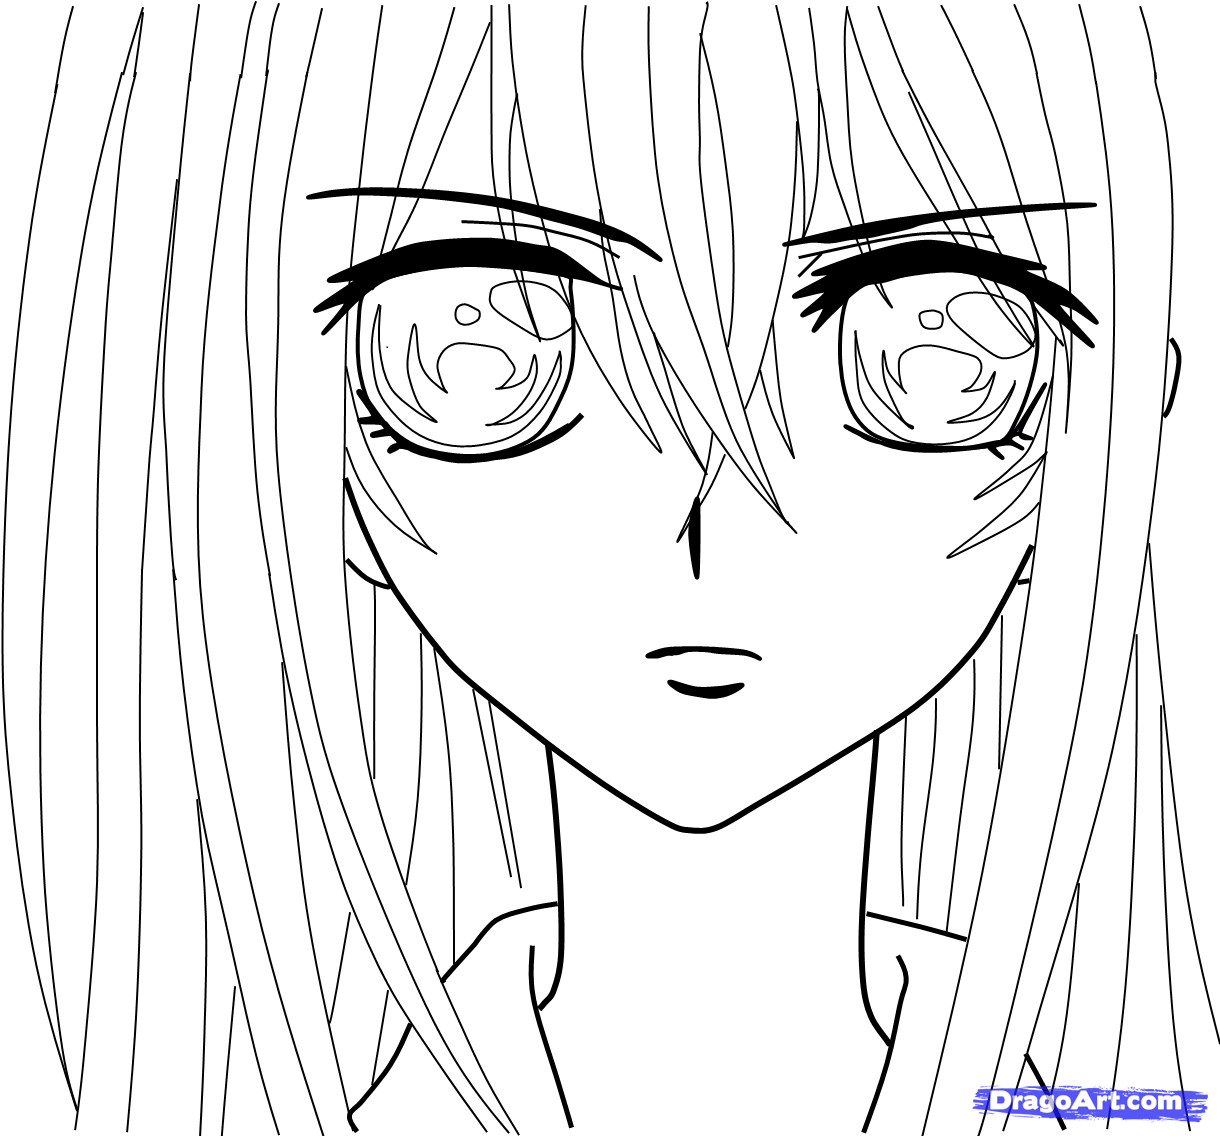 Vampire Anime Coloring Pages At Getcolorings